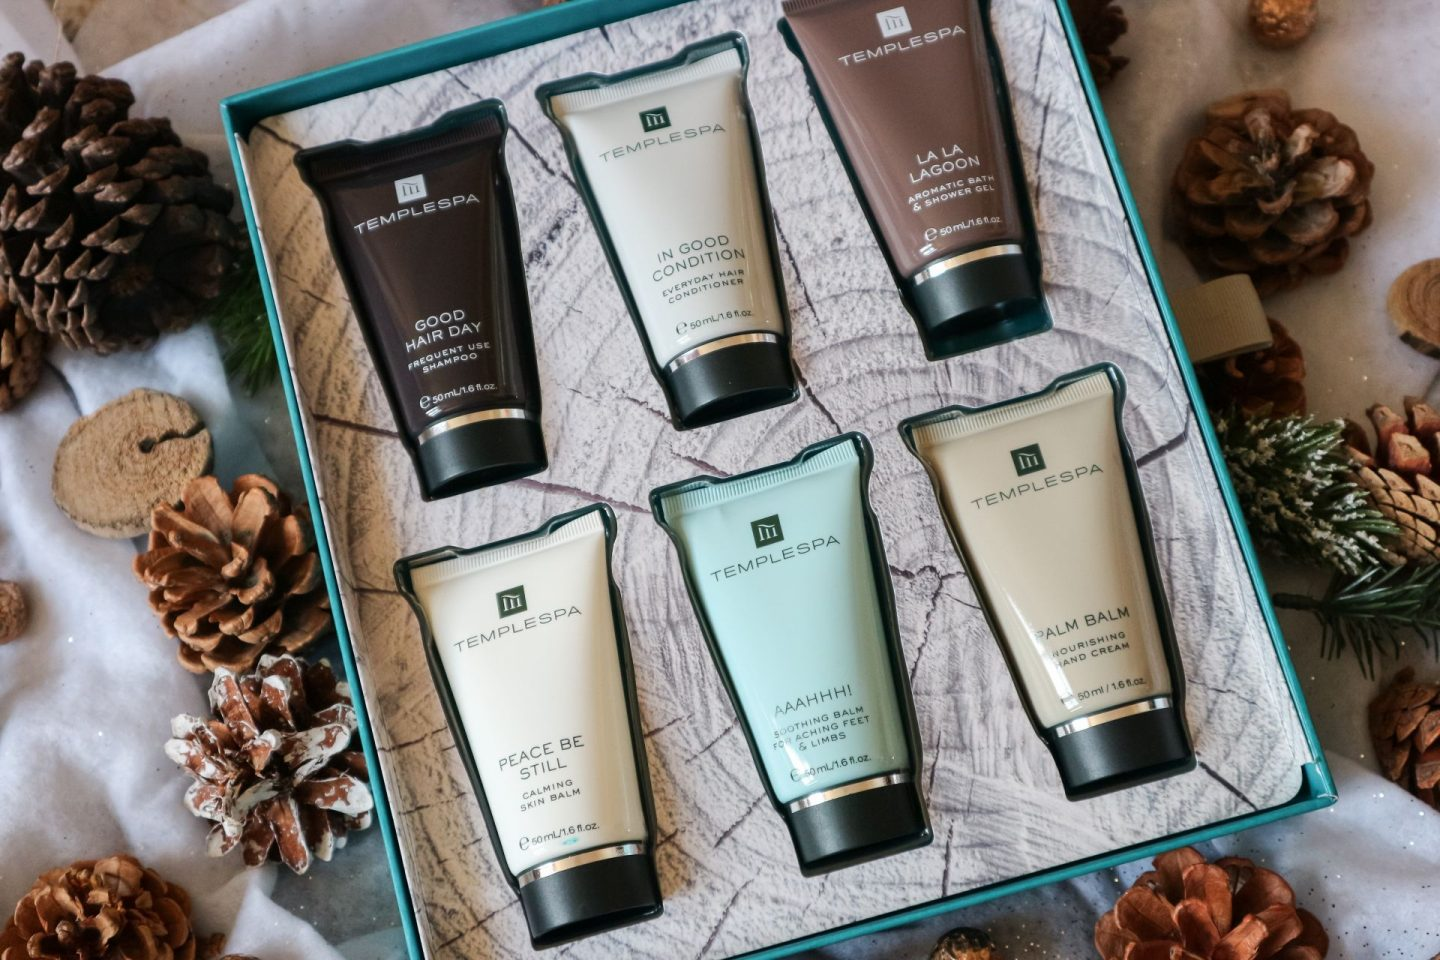 Temple Spa Home Is Where the Spa Is Gift Set review